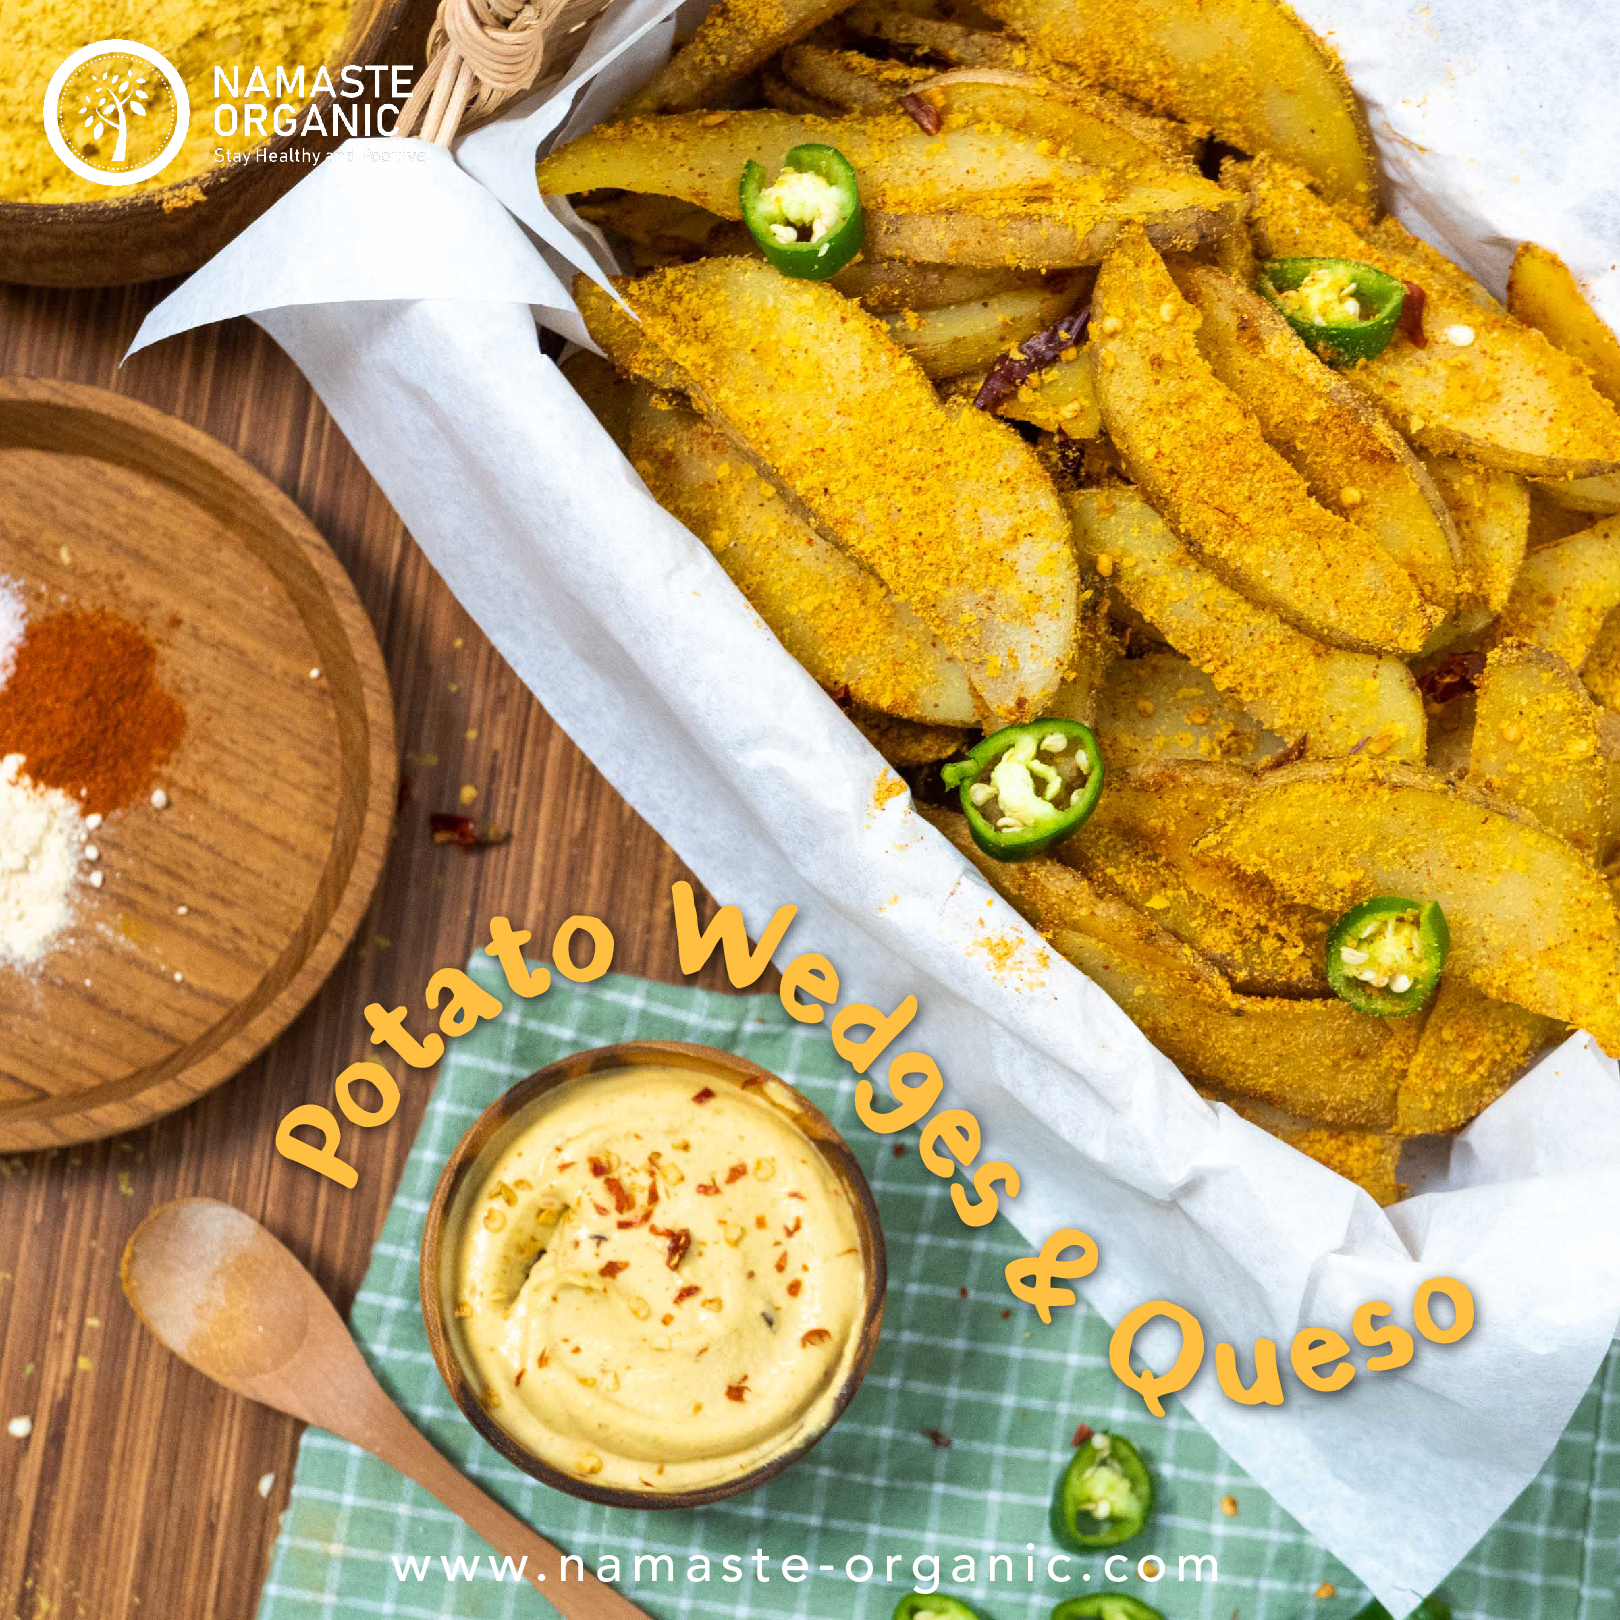 Roasted Potato Wedges with Vegan Cheese Dip image